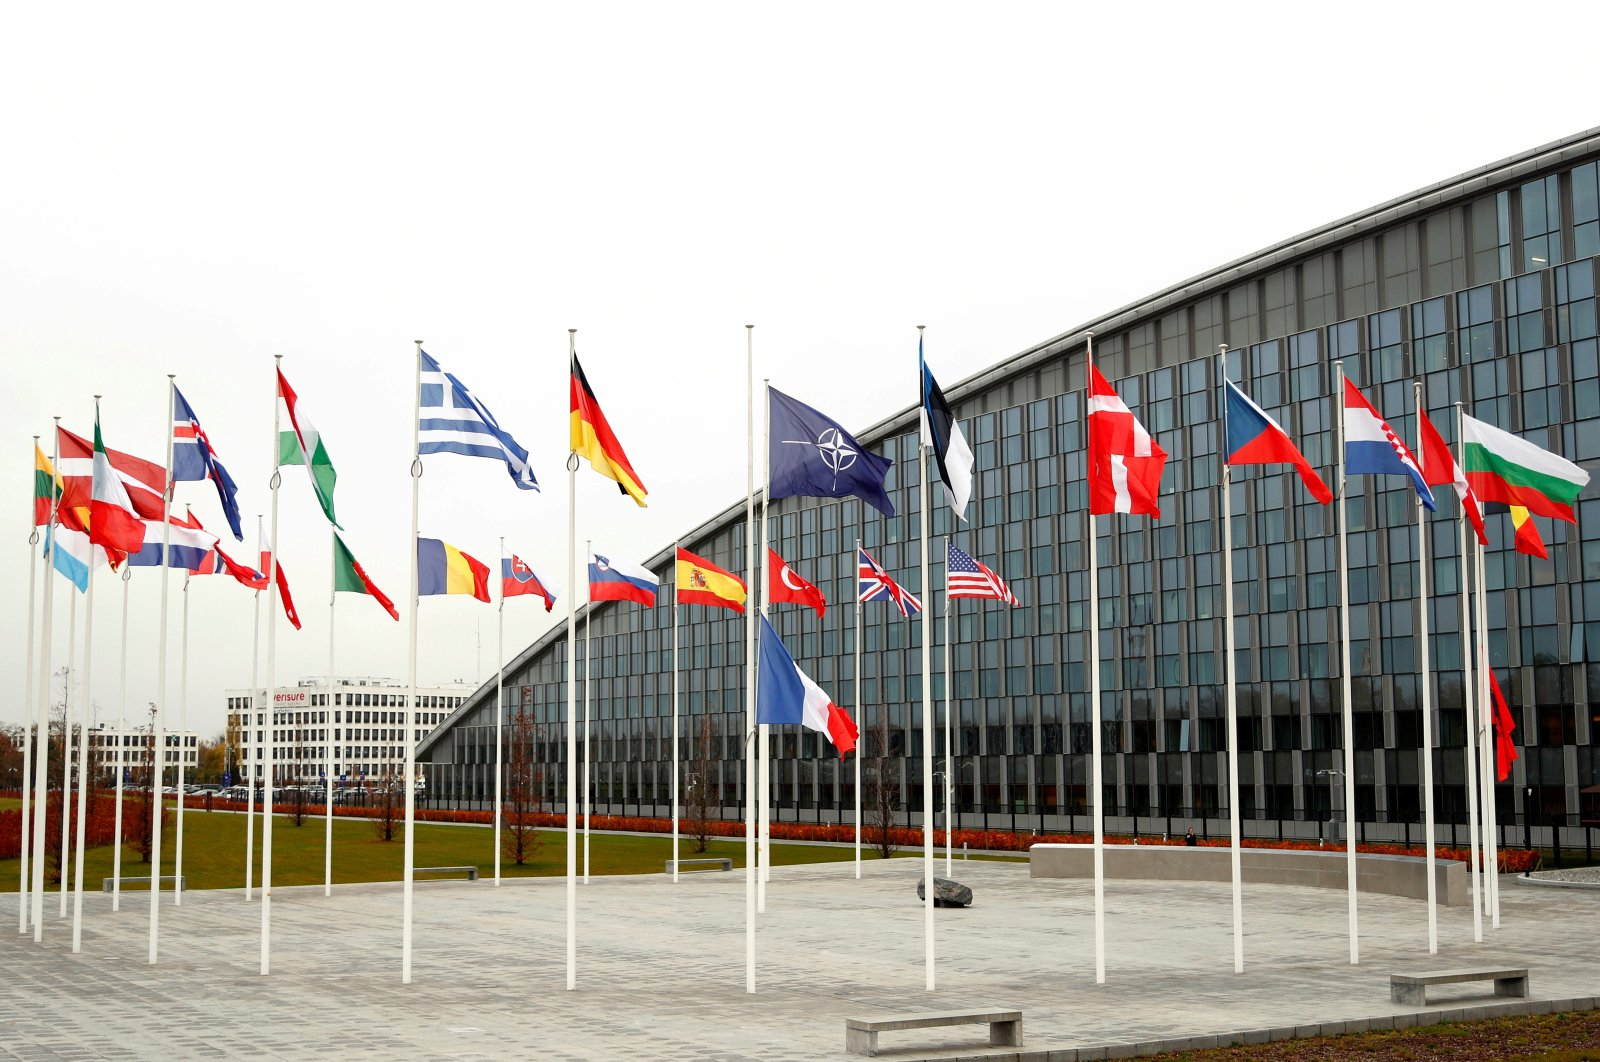 Flags of NATO member countries are seen at the Alliance headquarters in Brussels, Belgium, Nov. 26, 2019. (Reuters File Photo)